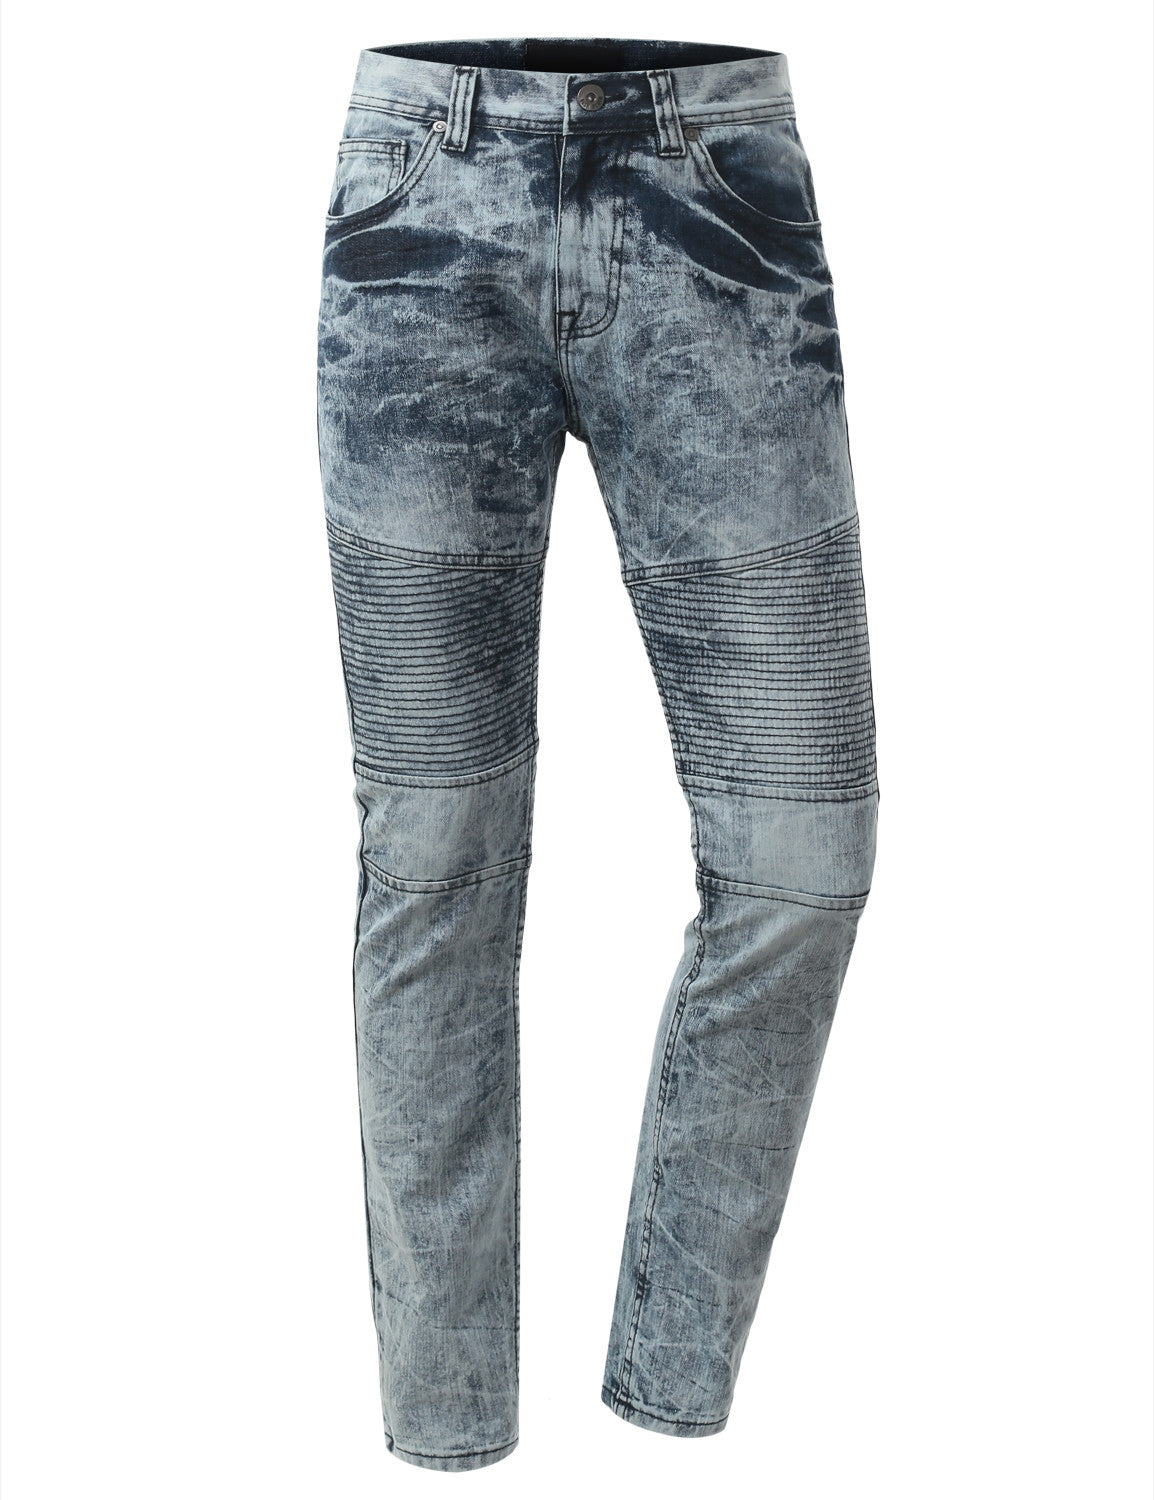 Straight Slim Fit Acid Wash Biker Jeans - URBANCREWS - 14